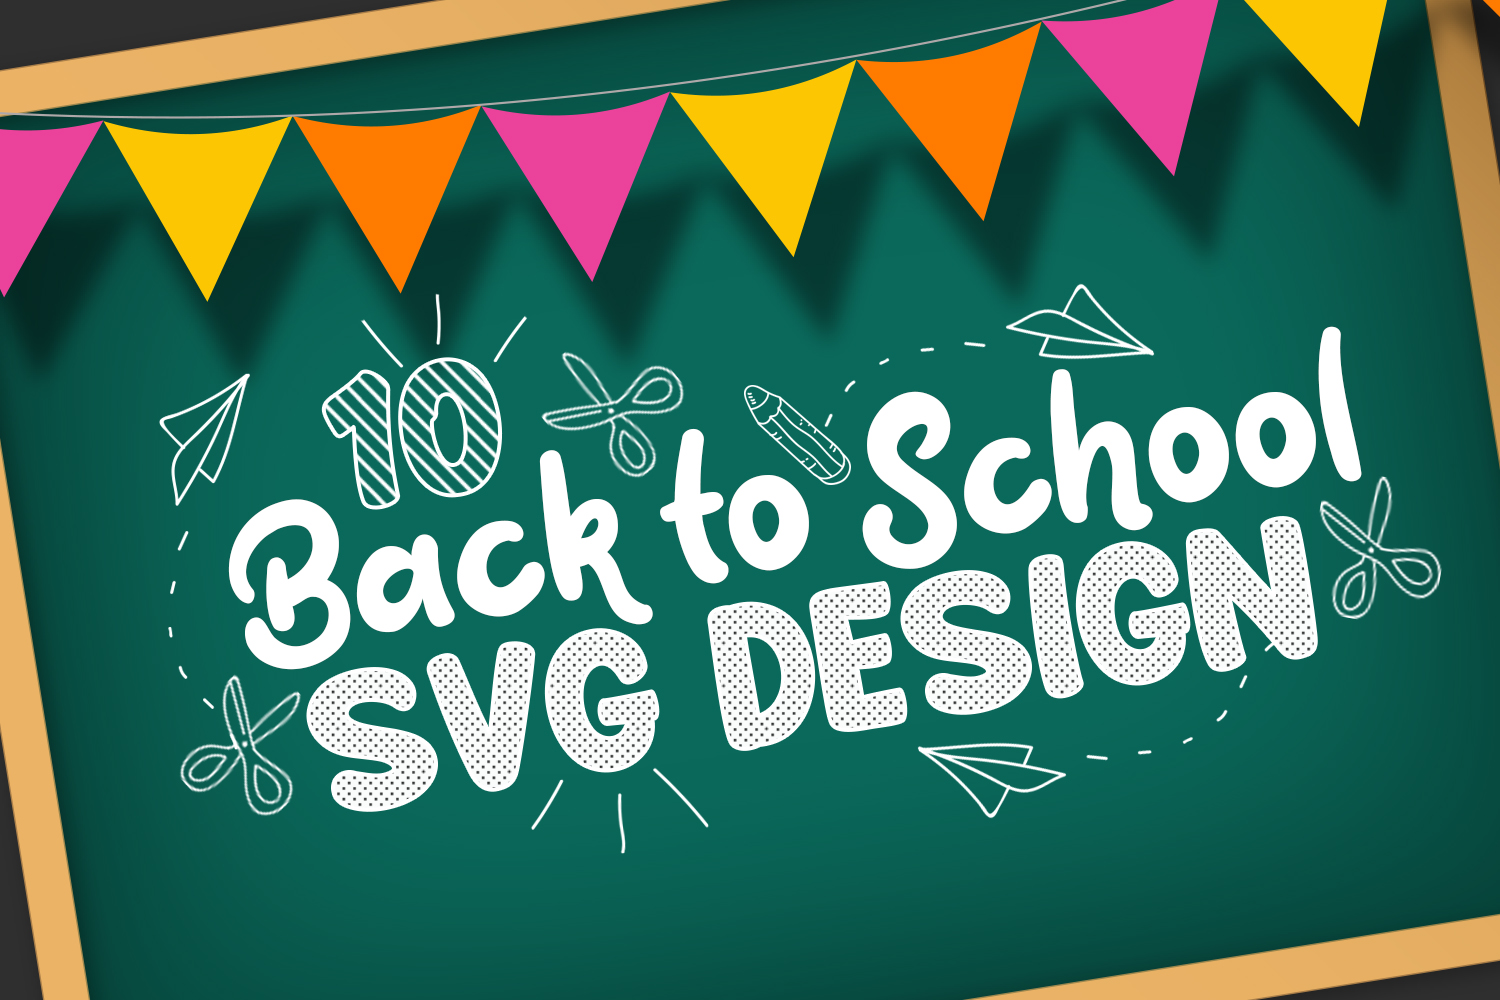 10 Back to School SVG Designs